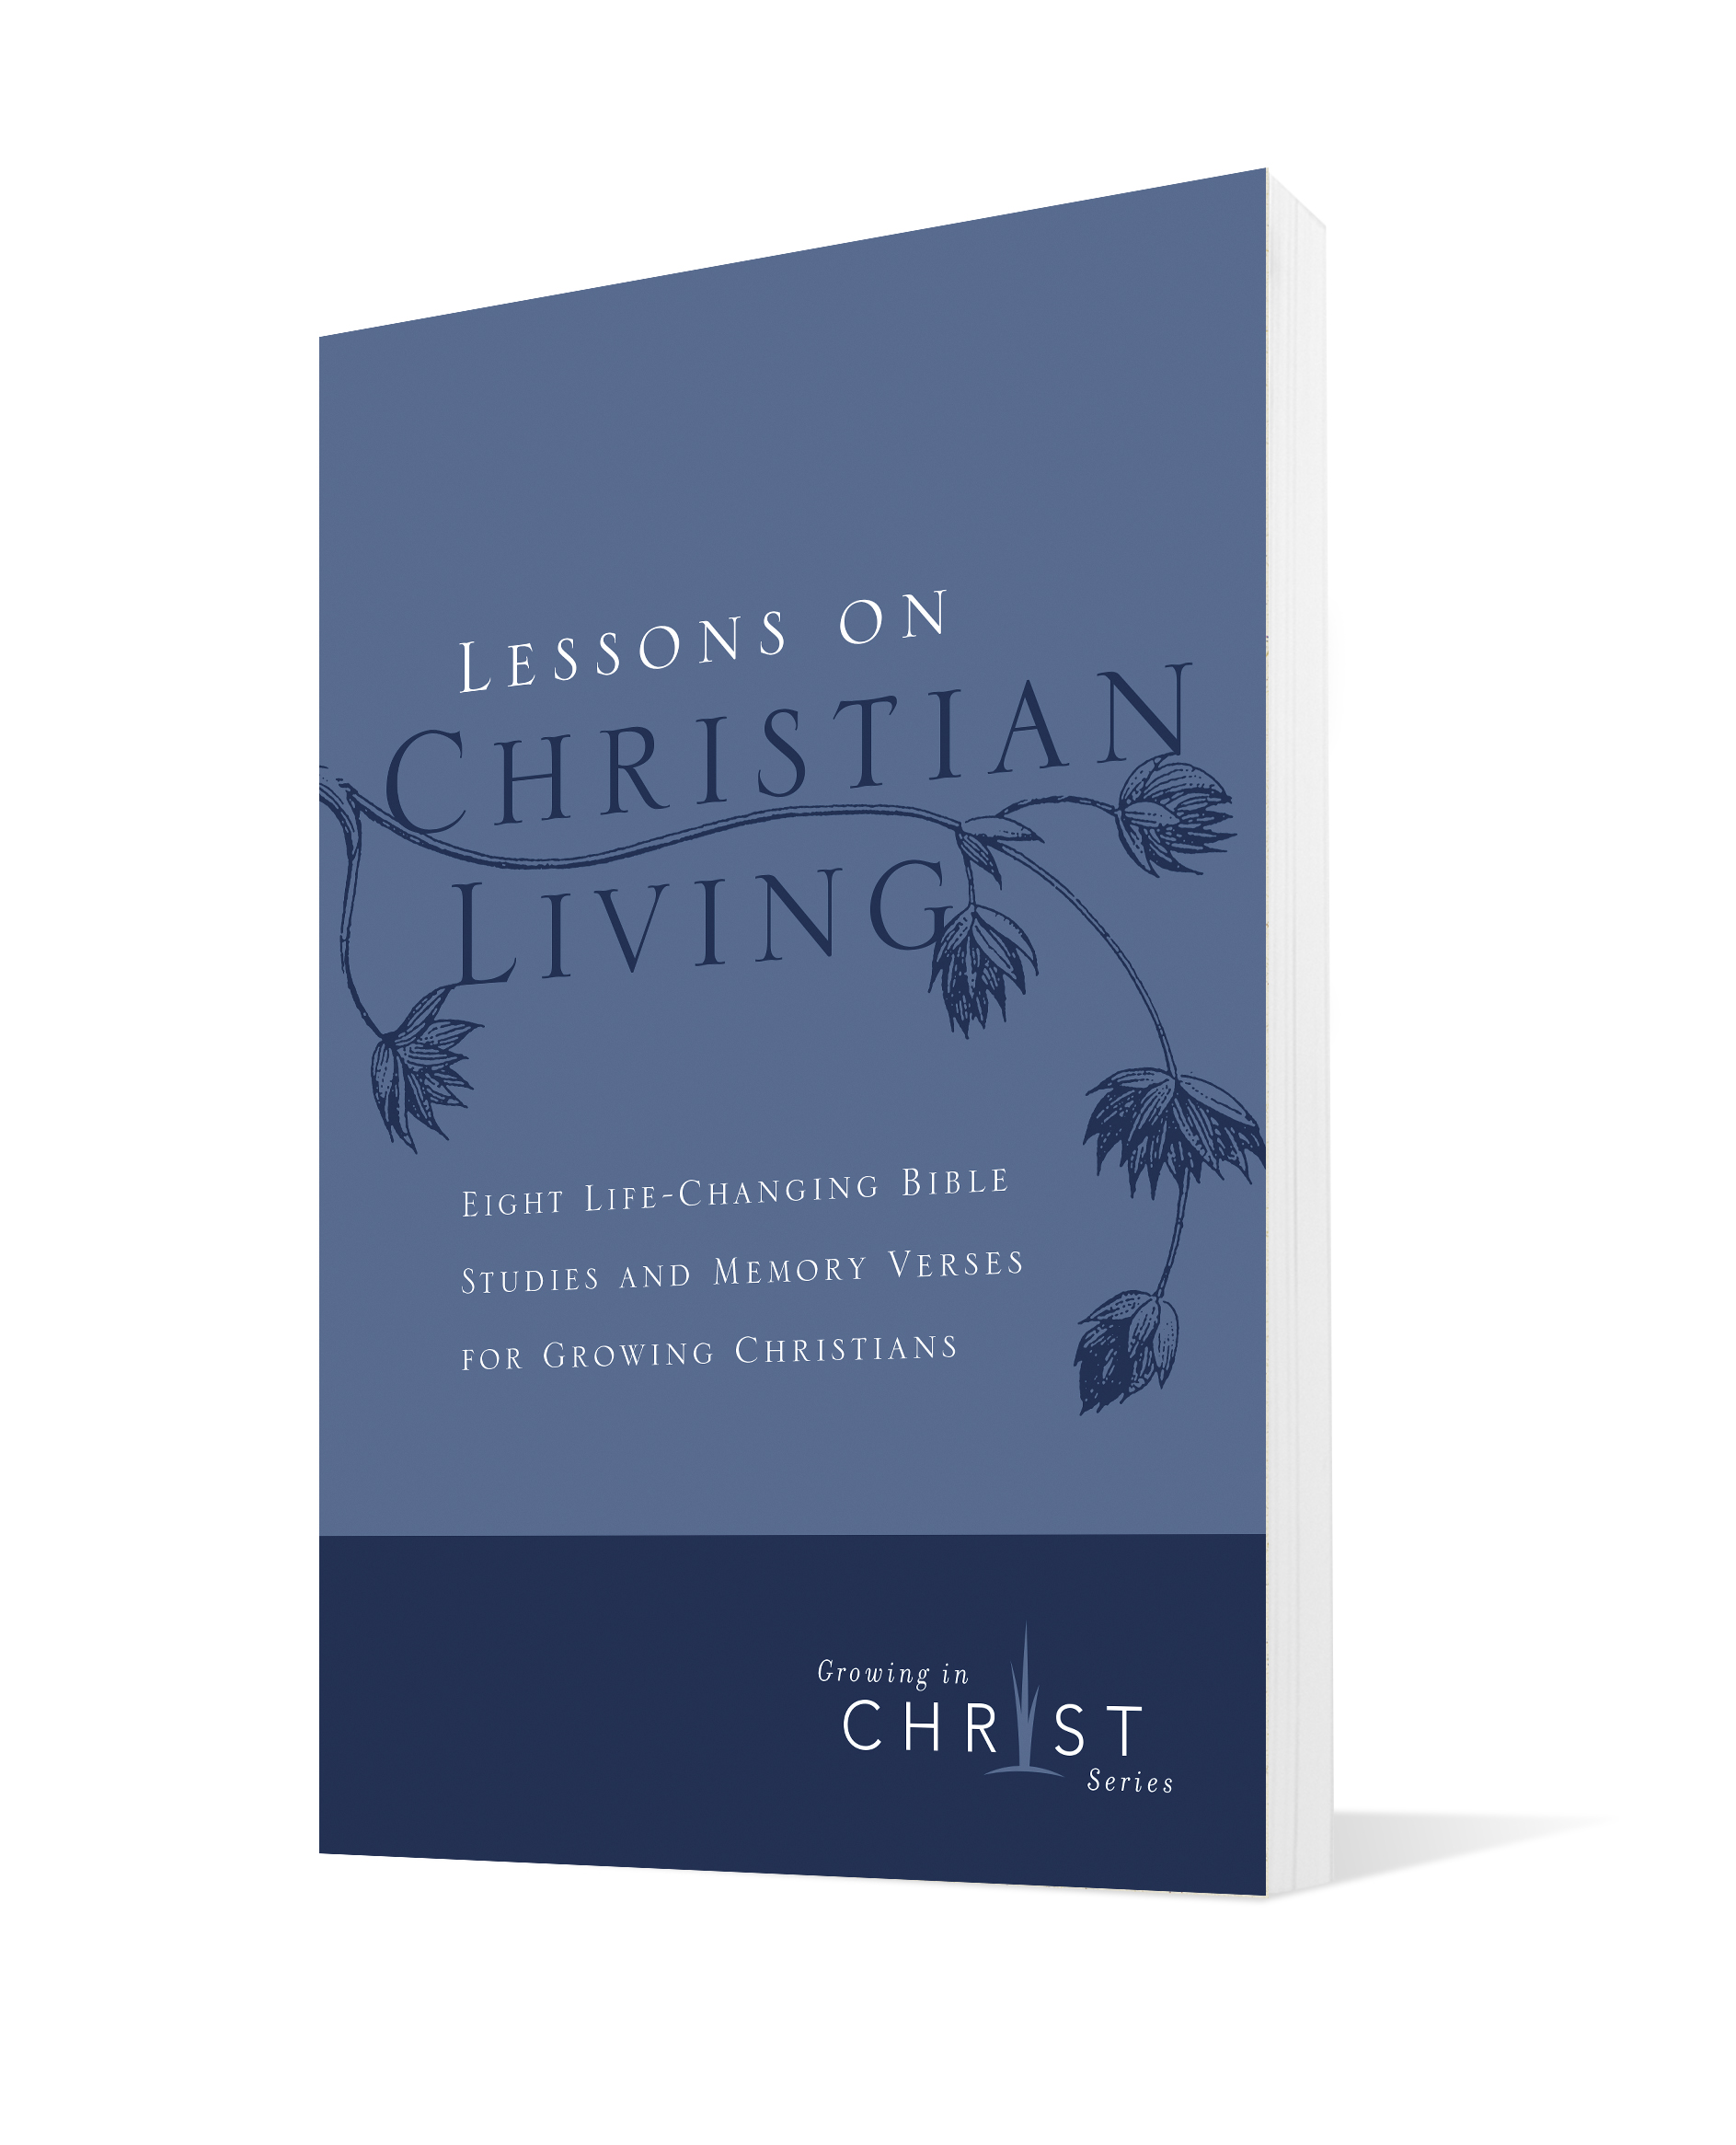 christian lessons on dating Help kids, youth and adults see god through the christian object lessons that are all around us in every season and holiday - even the everday object lesson can.